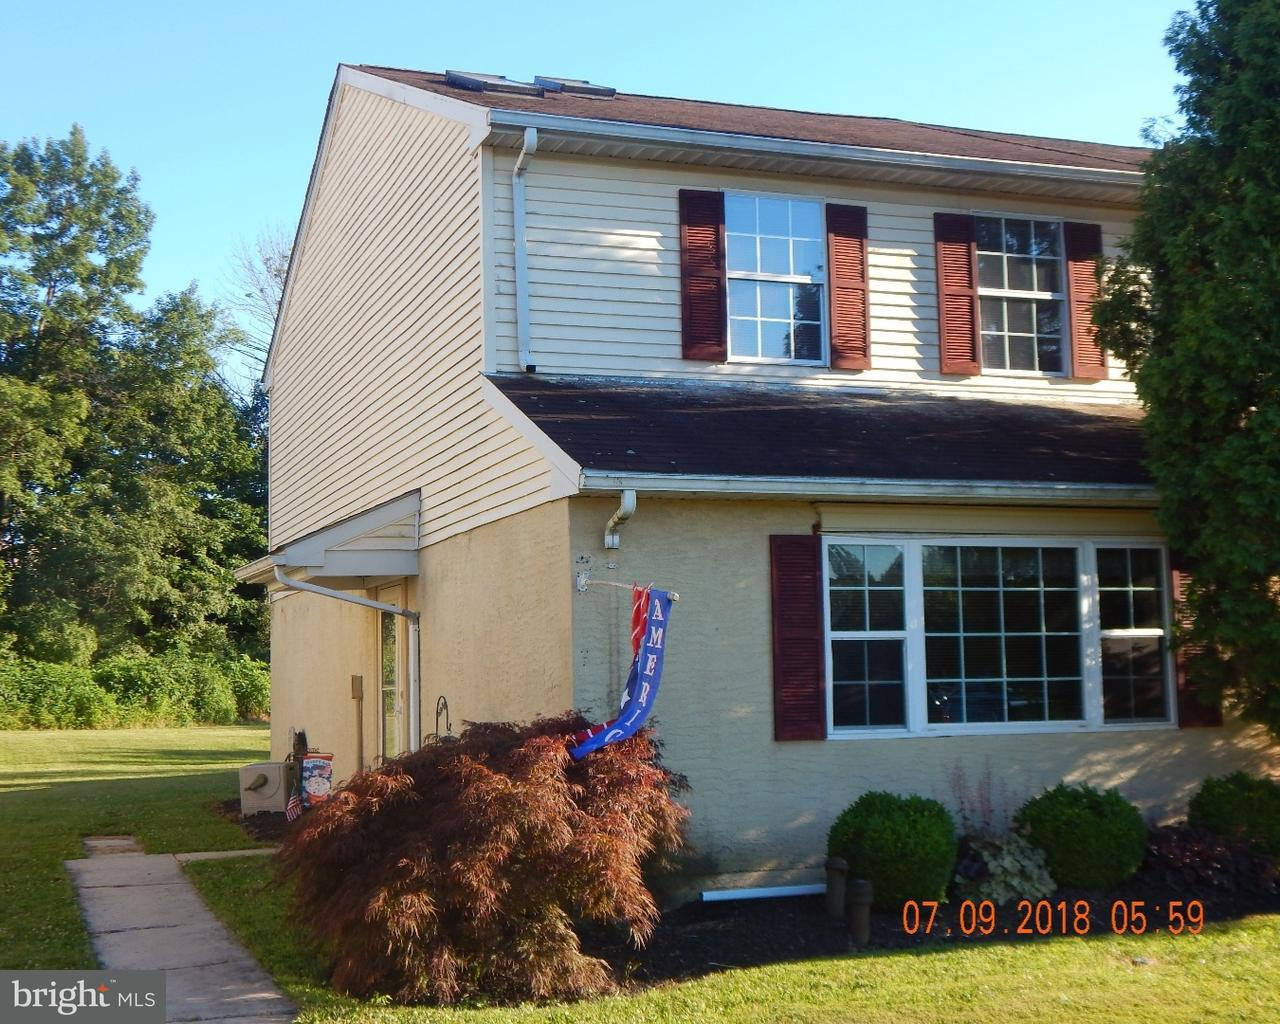 6 MIMOSA CT, QUAKERTOWN - Listed at $156,900, QUAKERTOWN